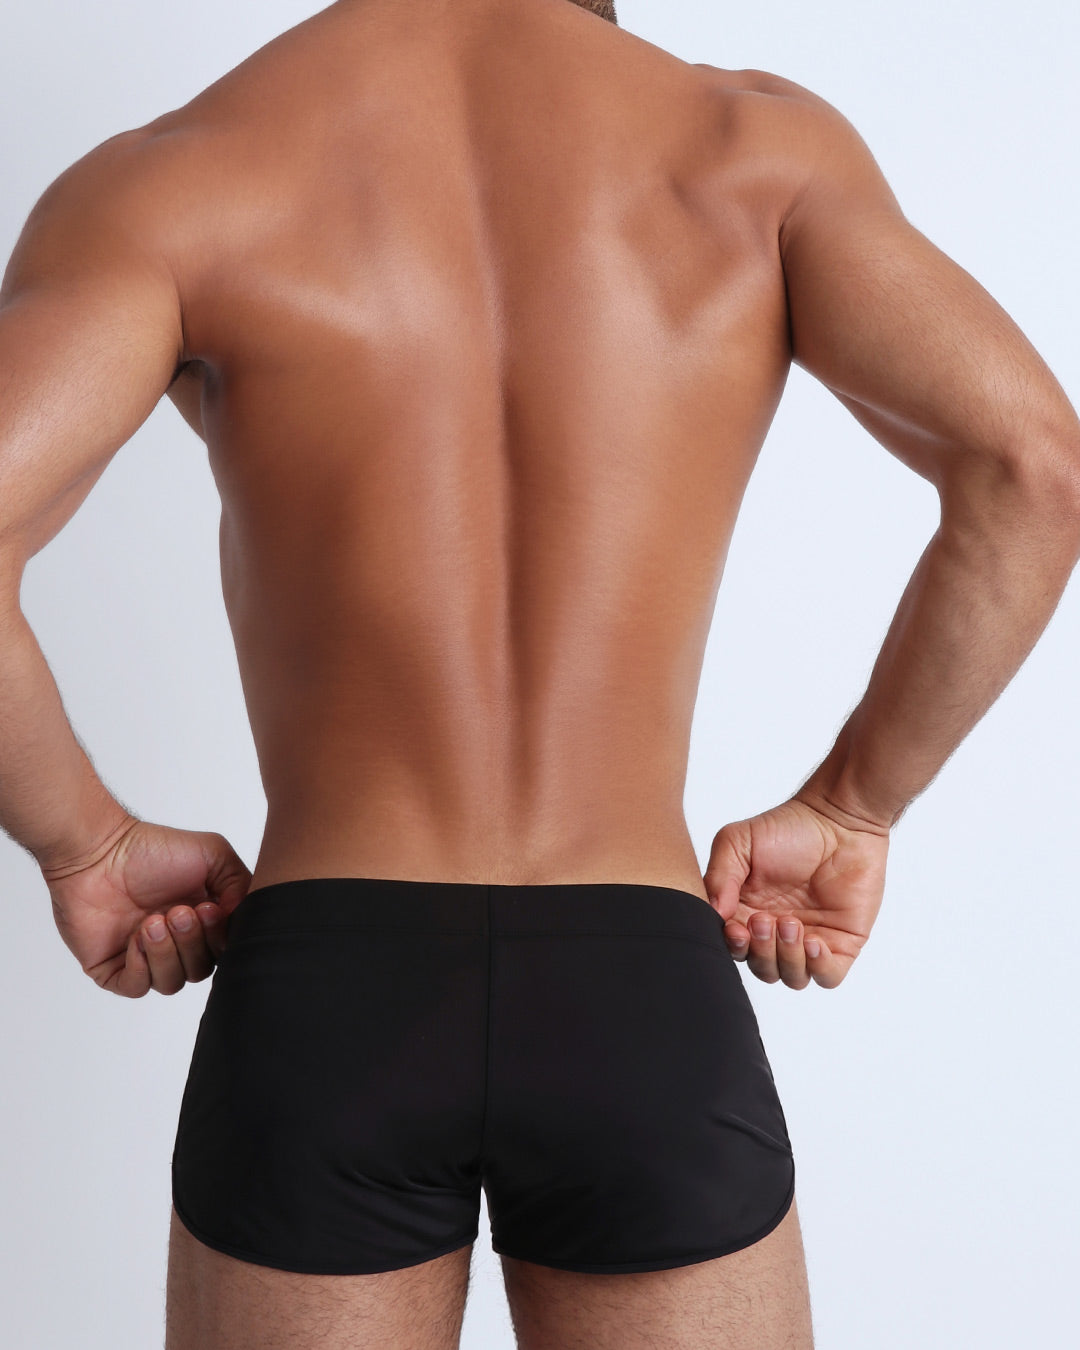 Left side view of a masculine model wearing men's swim shorts in solid black with official logo of BANG! Brand in white.